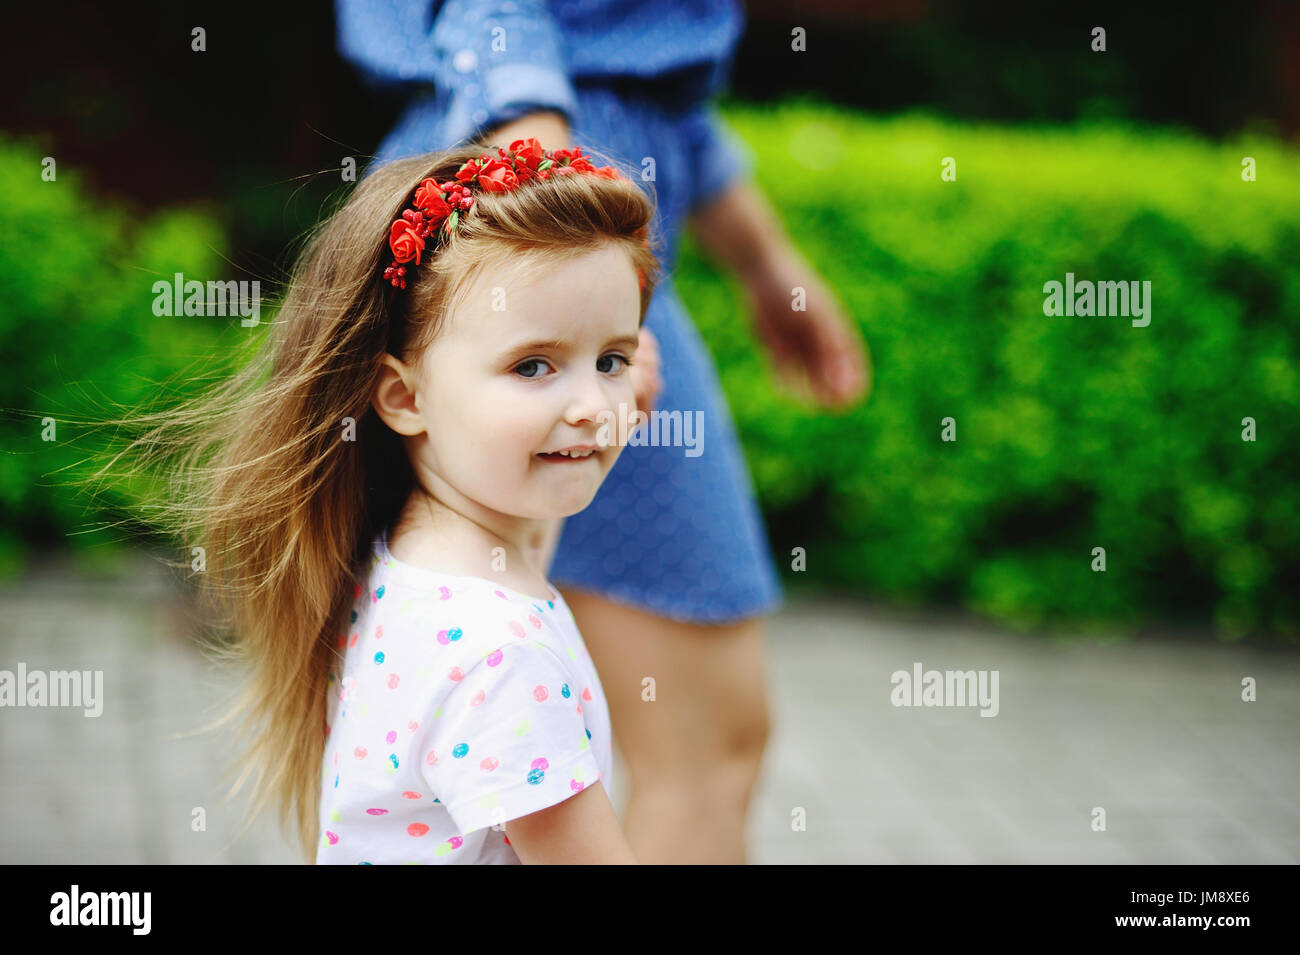 Portrait of the little girl who walks with mother. The charming baby with a wreath from red colors on the head. - Stock Image